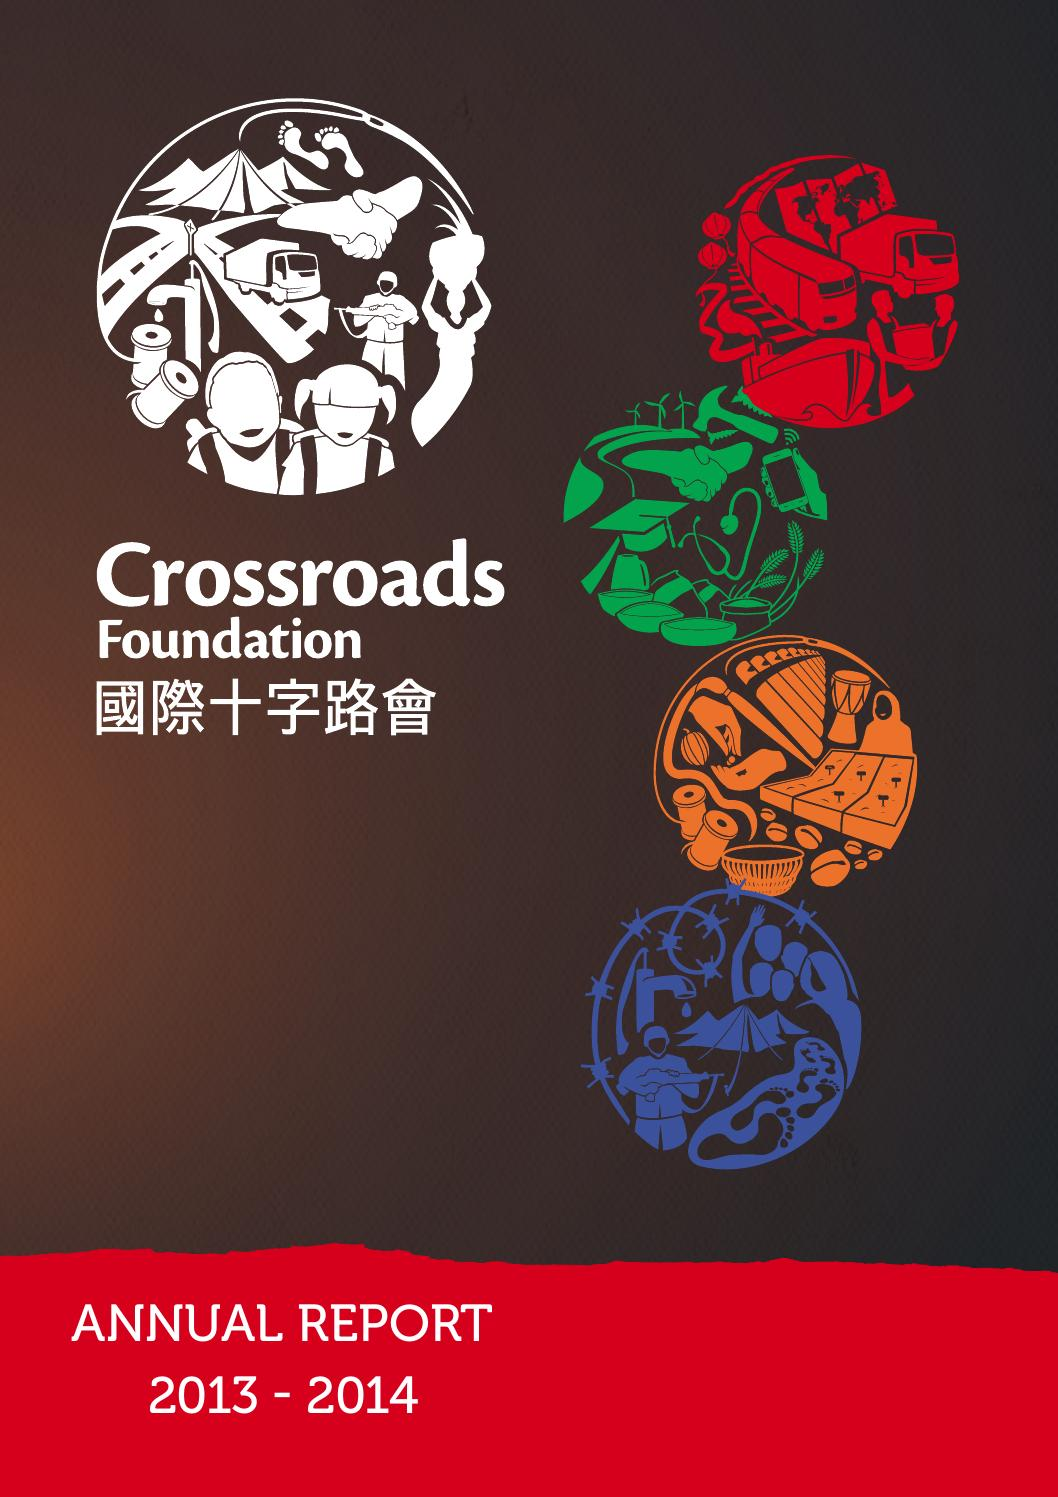 ab76ff03c177 Crossroads Foundation Annual Report 2013 - 2014 by Kate Falconer - issuu